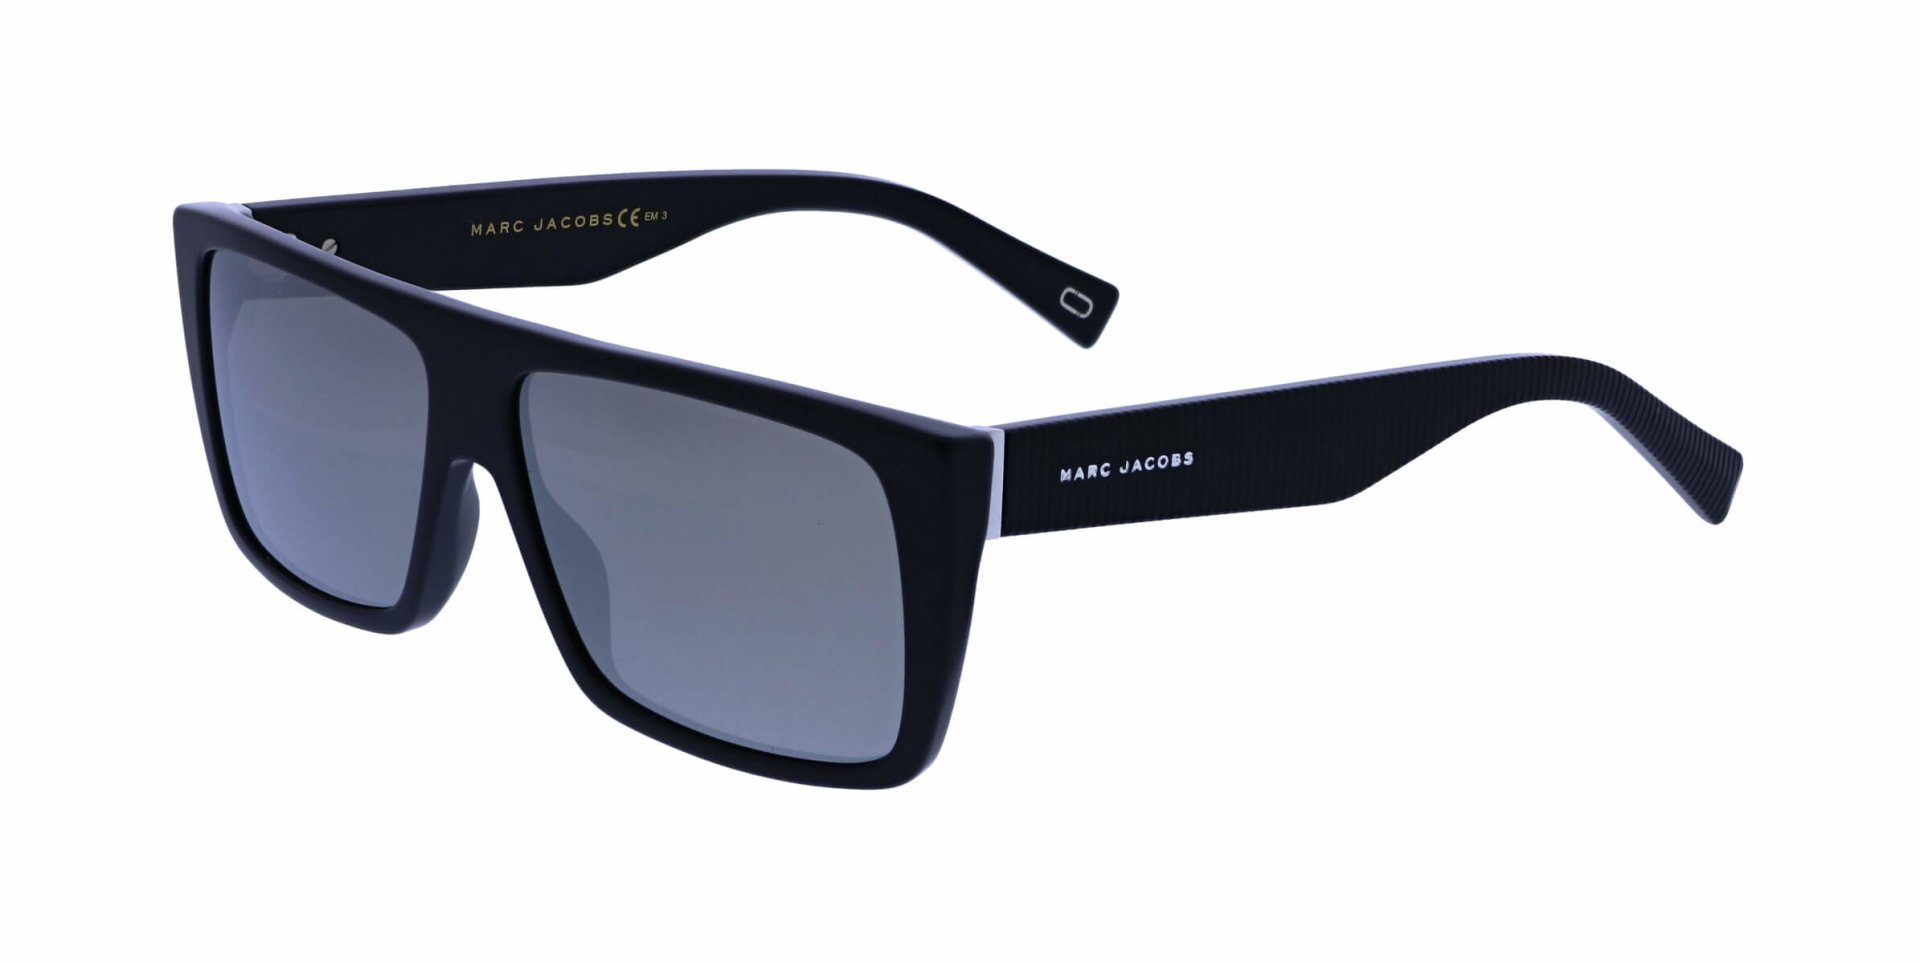 MARC JACOBS ICON 096/S P5P/T4